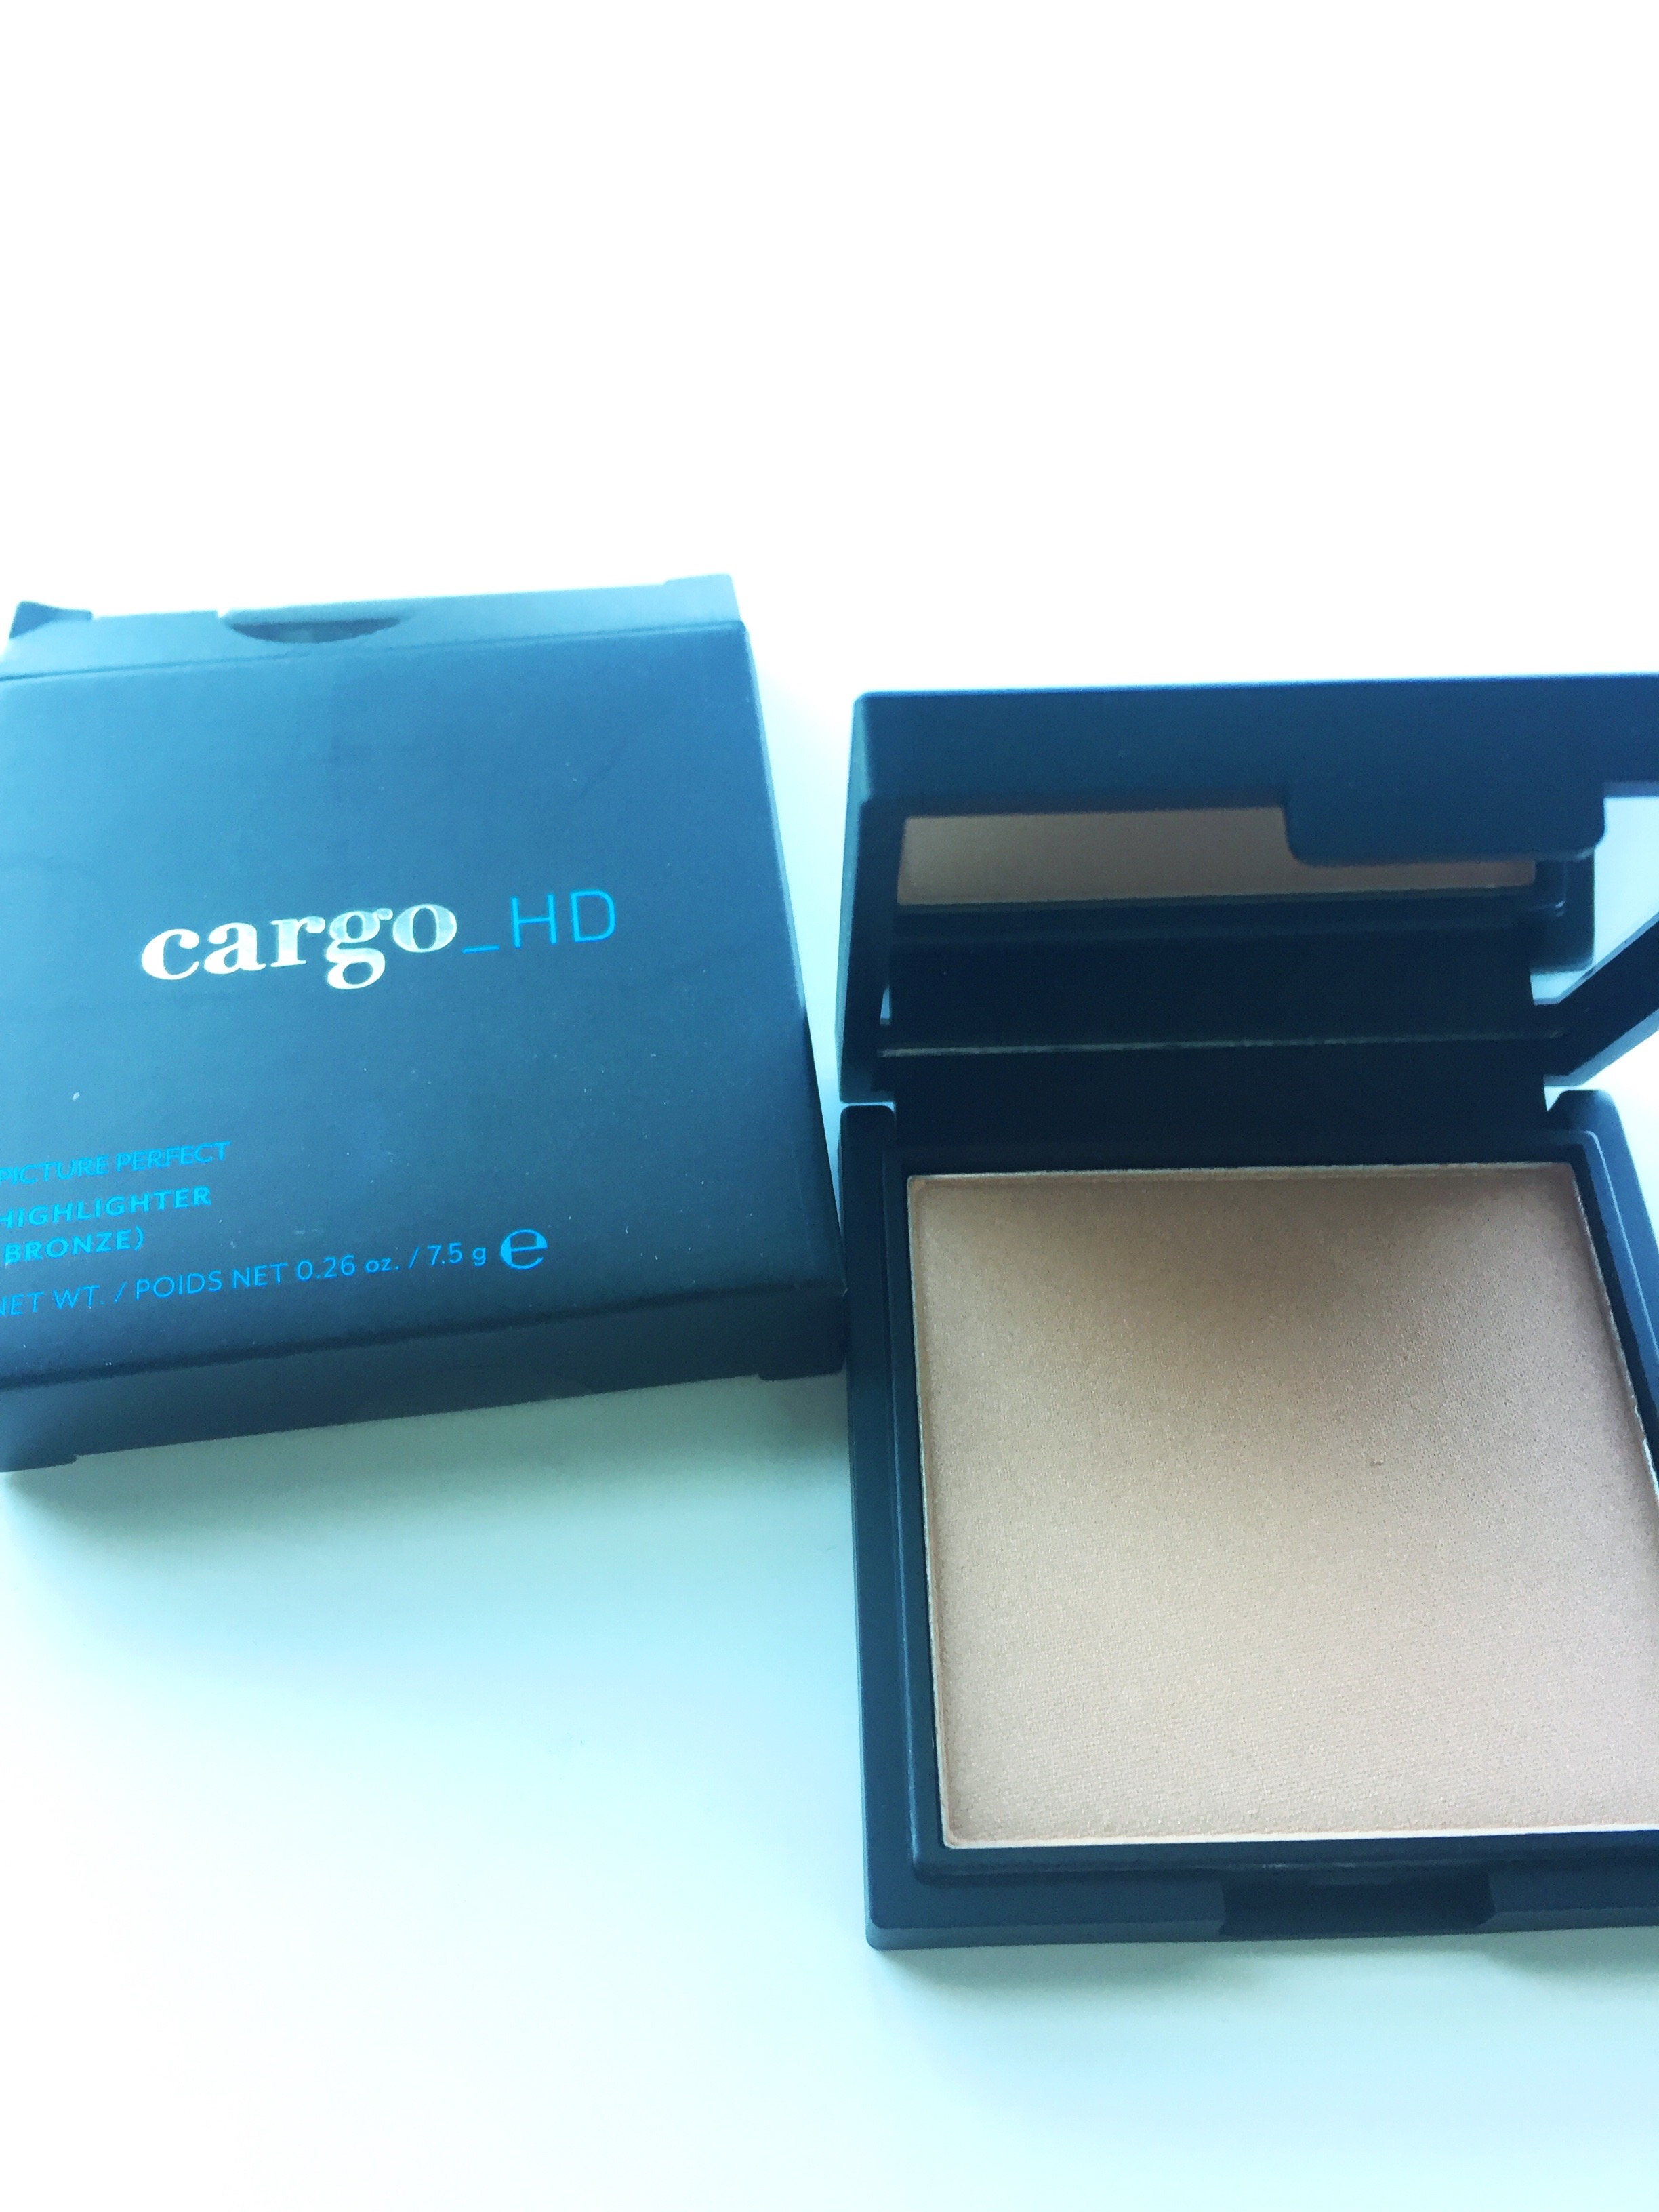 FabFitFun Summer 2017 Cargo HD Highlighter